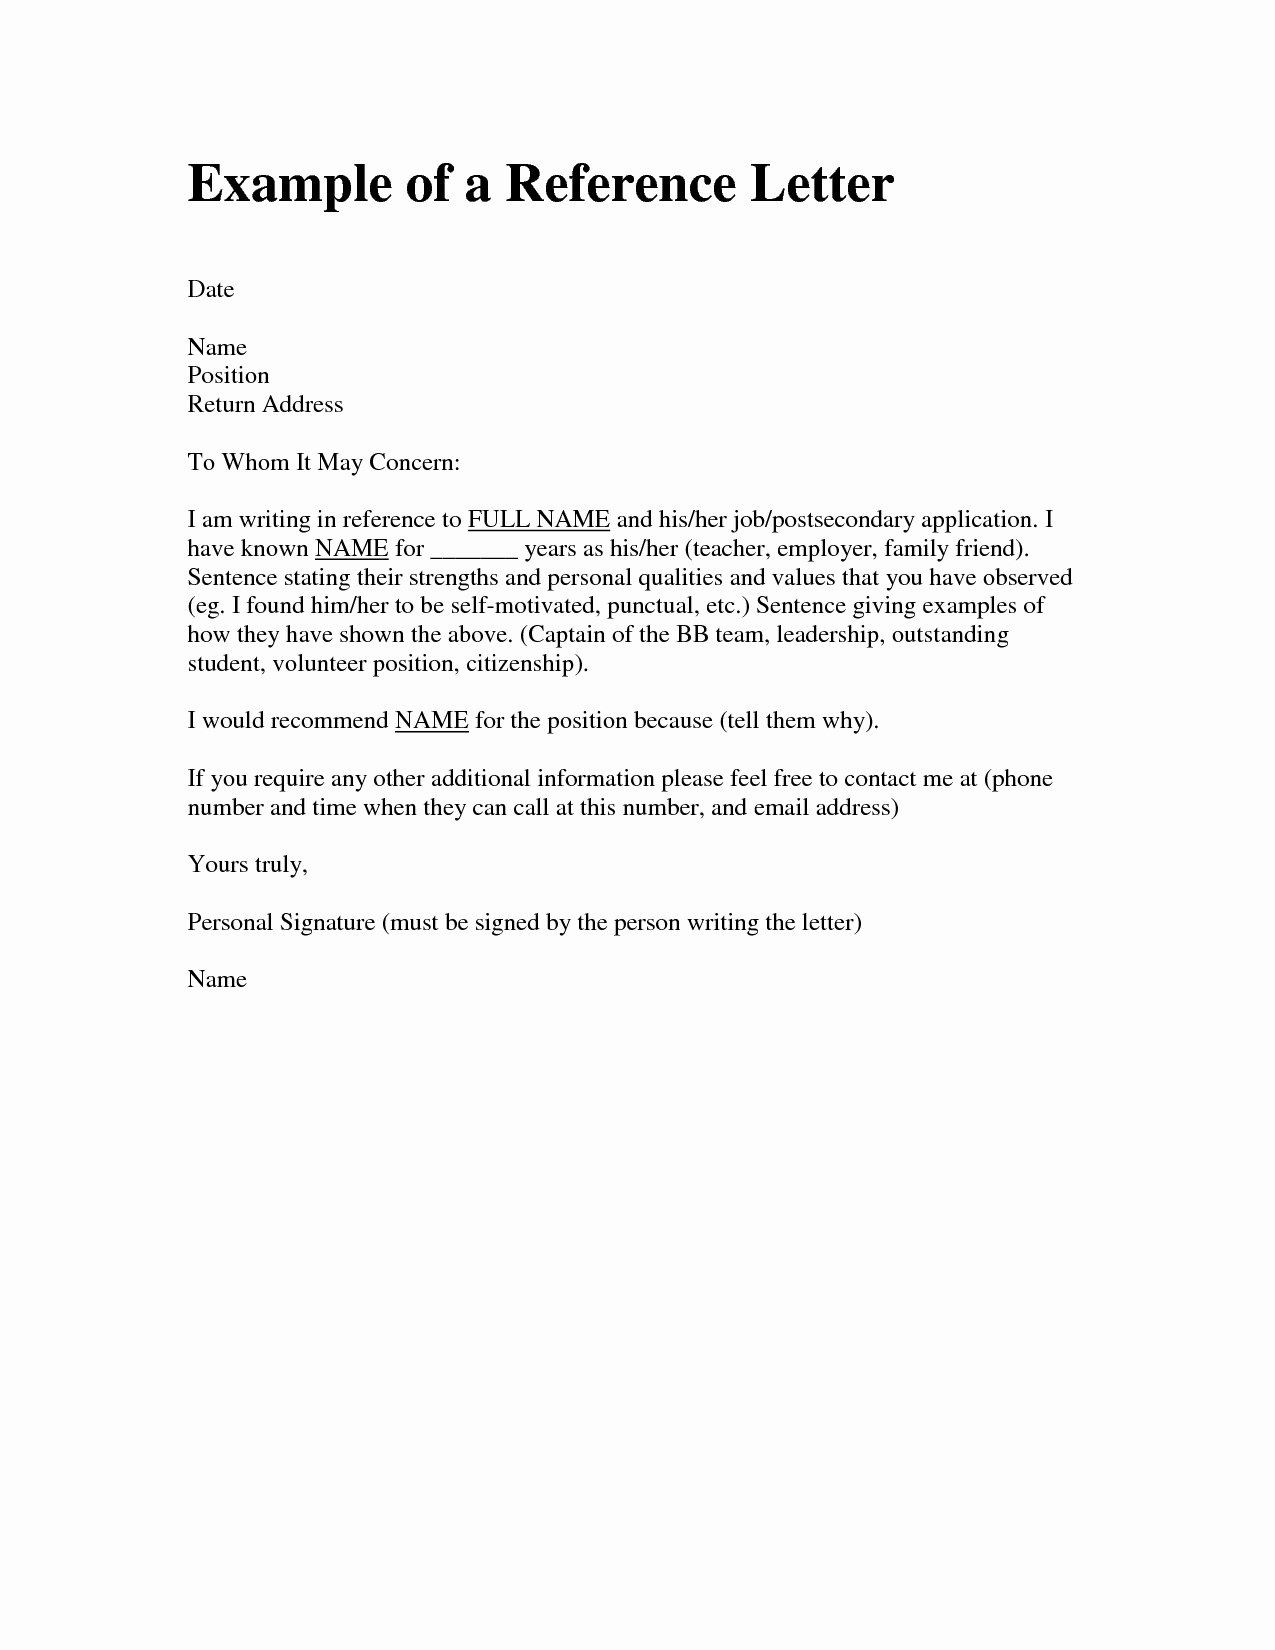 Copy Of A Reference Letter Elegant Letter Re Mendation Template for Friend Letter Art